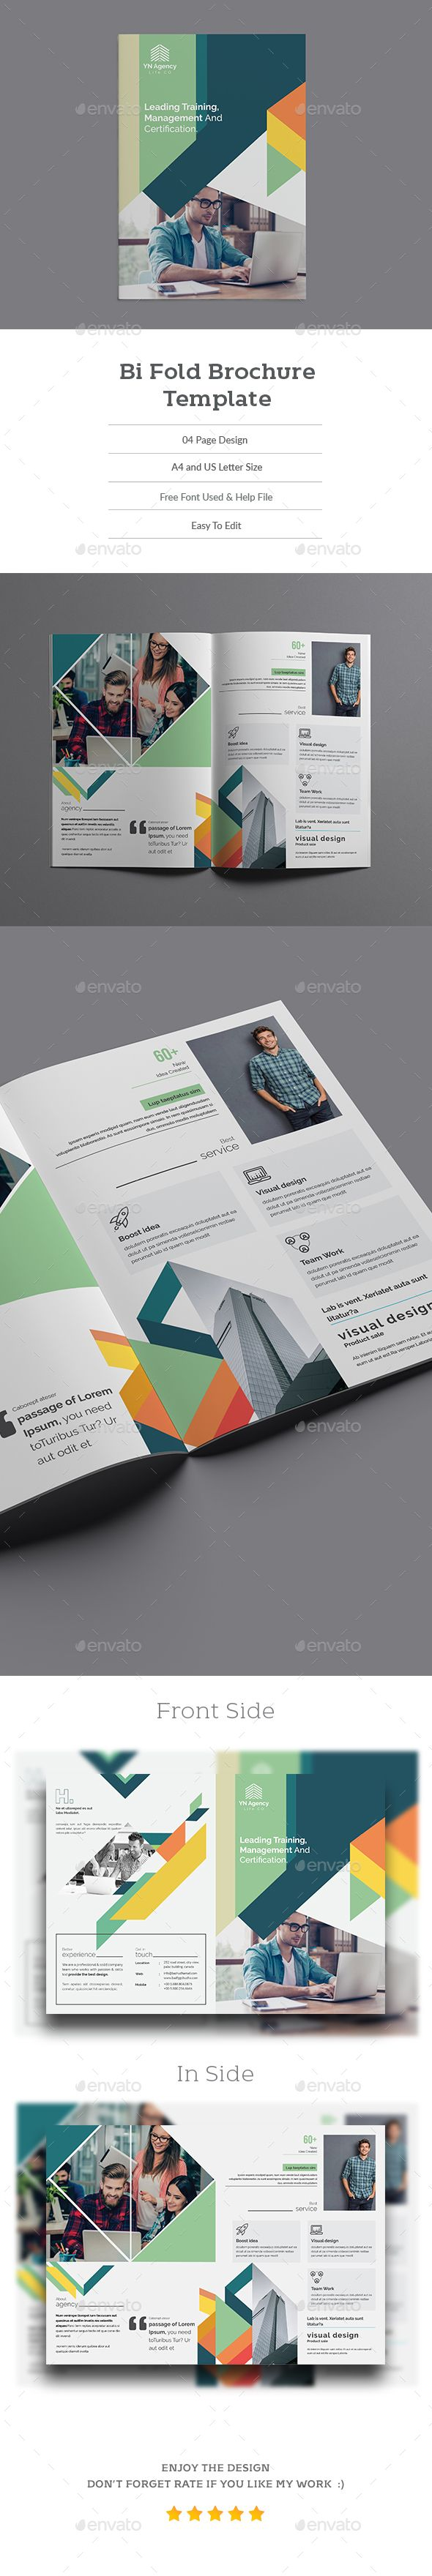 Bi Fold Brochure Template Feature:  A4 & letter Size Tri-Fold Brochure Optimized for printing. 0.125 IN Bleed Included For Both A4 & Letter size. CMYK color mode. INDD, INDT & IDML Files Included. Free but High Quality Commercial Looking Fonts Used in This Design. Images are not Included, These are For just Preview purpose. Help Guide...  search tag: #Bi Fold #Brochure #Template - #Corporate #Brochures